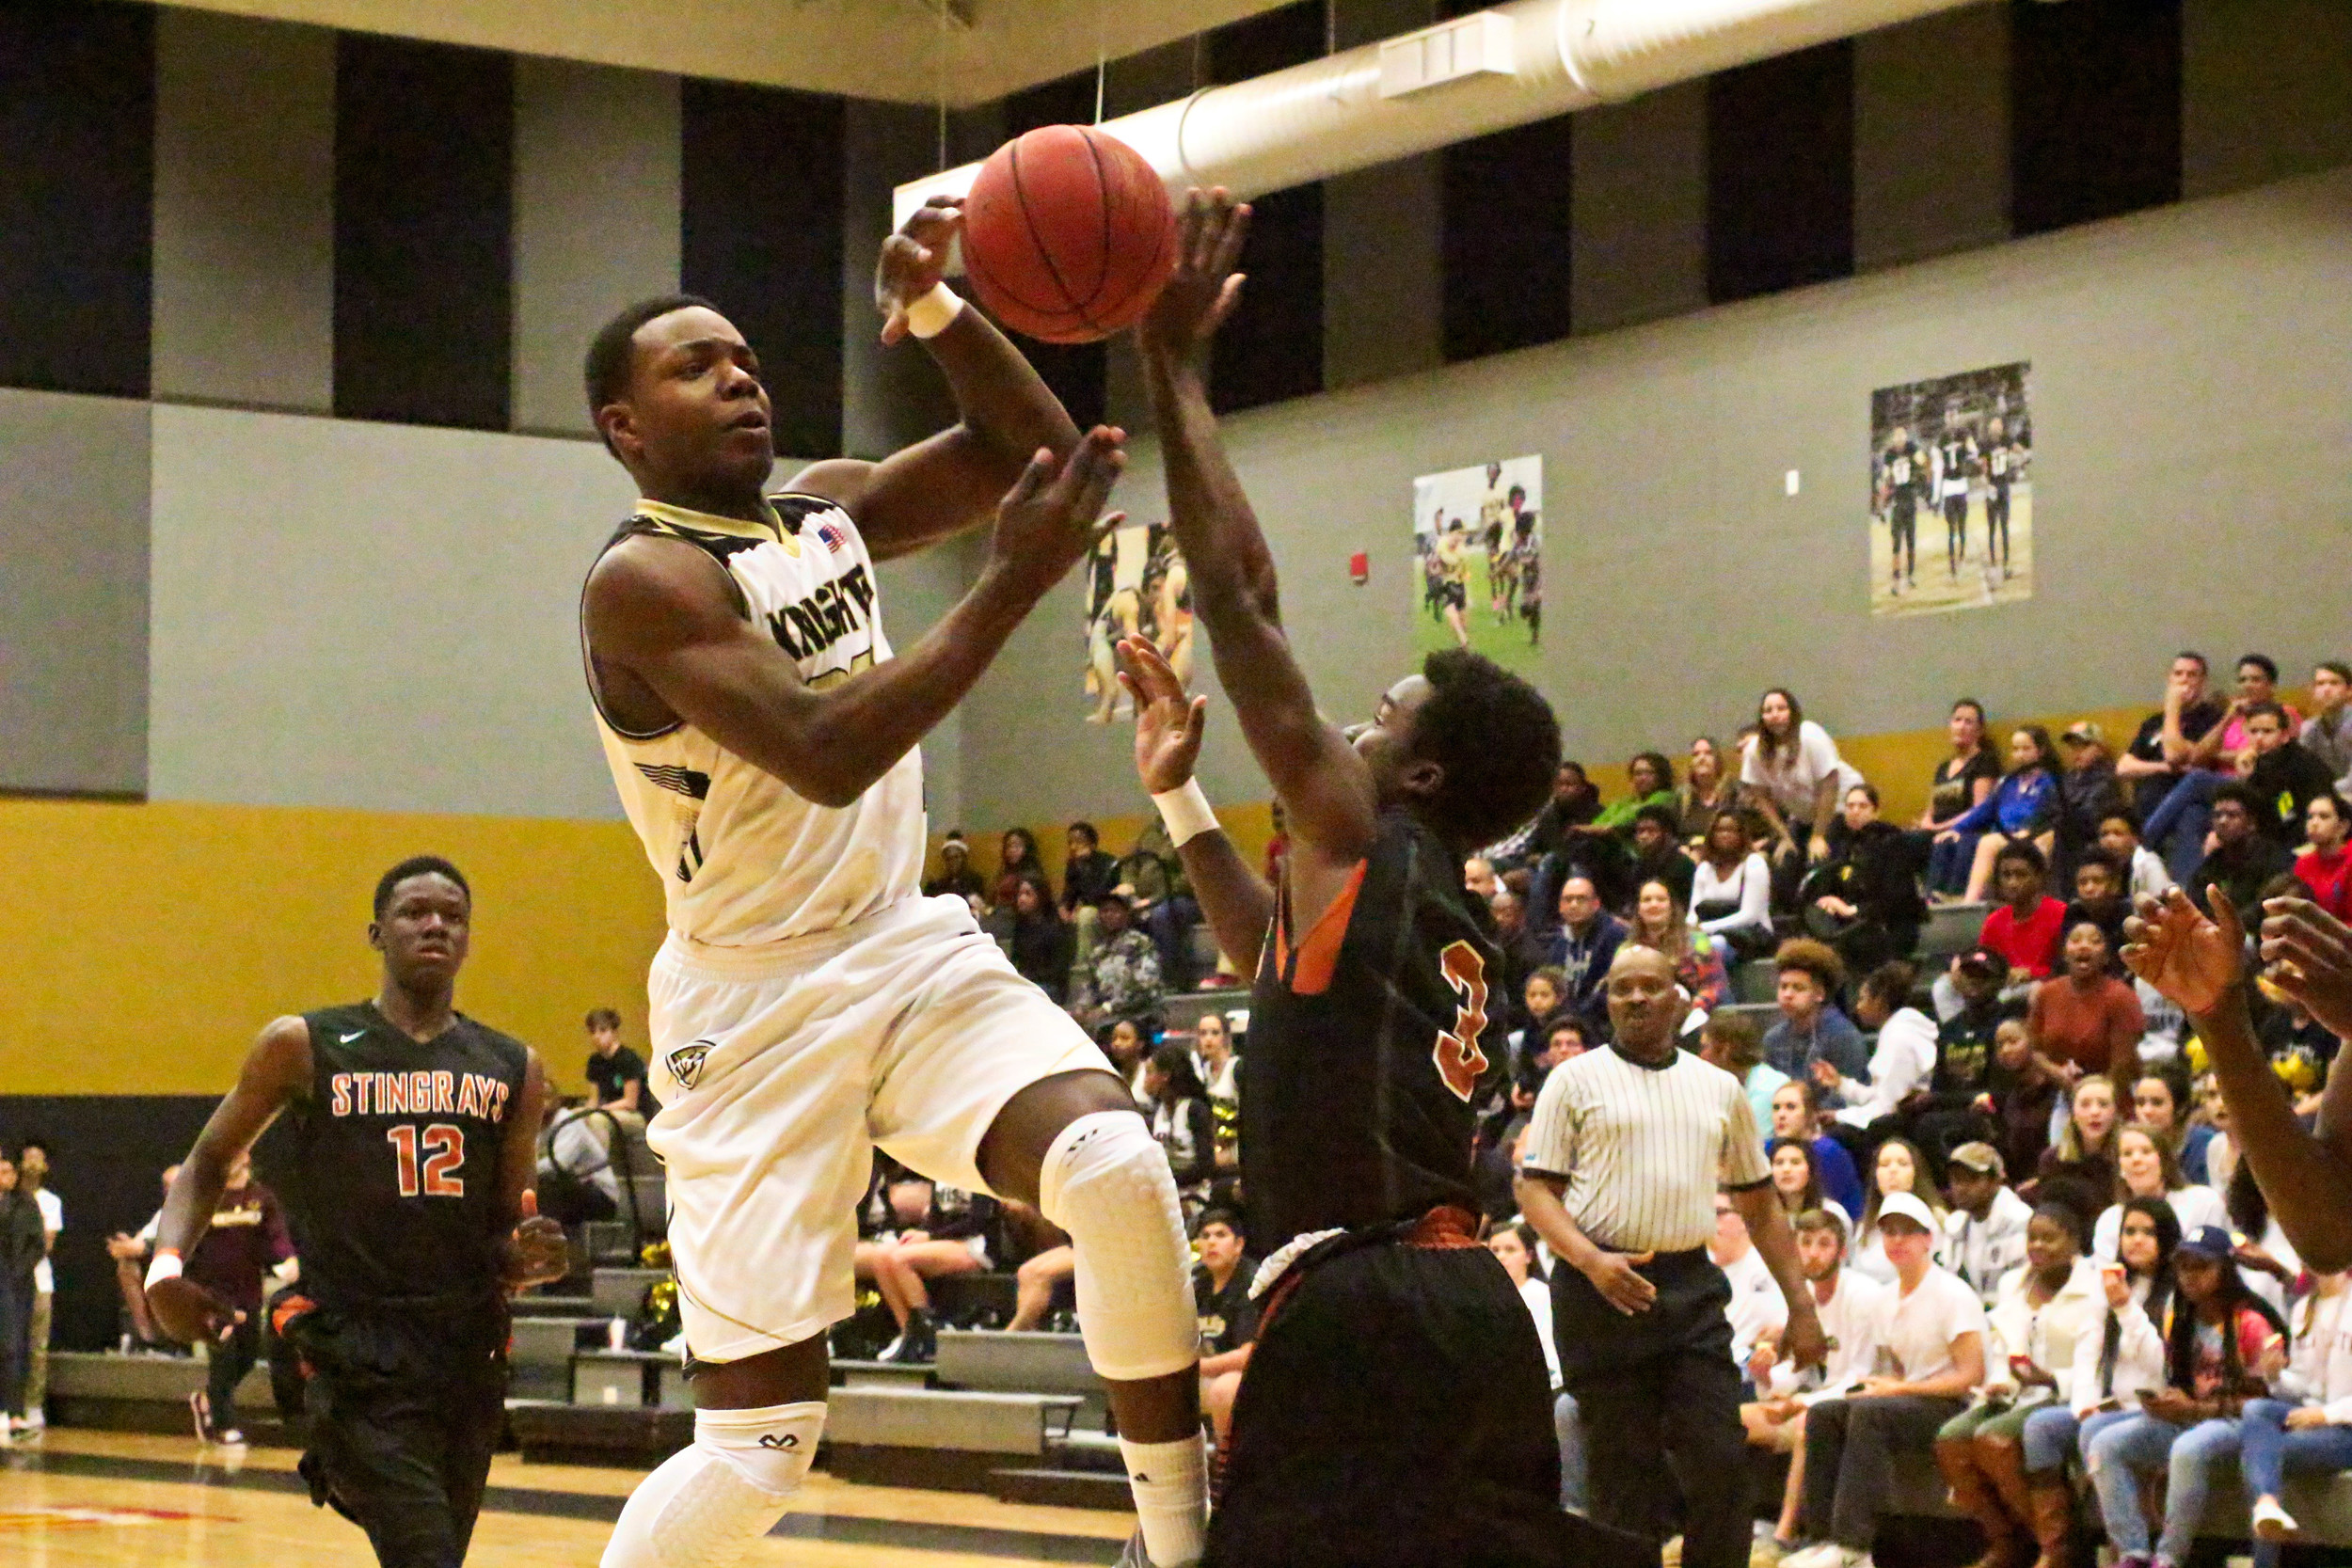 Oakleaf High forward Jonathan Bryant, who scored 30 points in Knights district final win over Creekside a week ago, was held to just 14 points by Atlantic Coast High School.